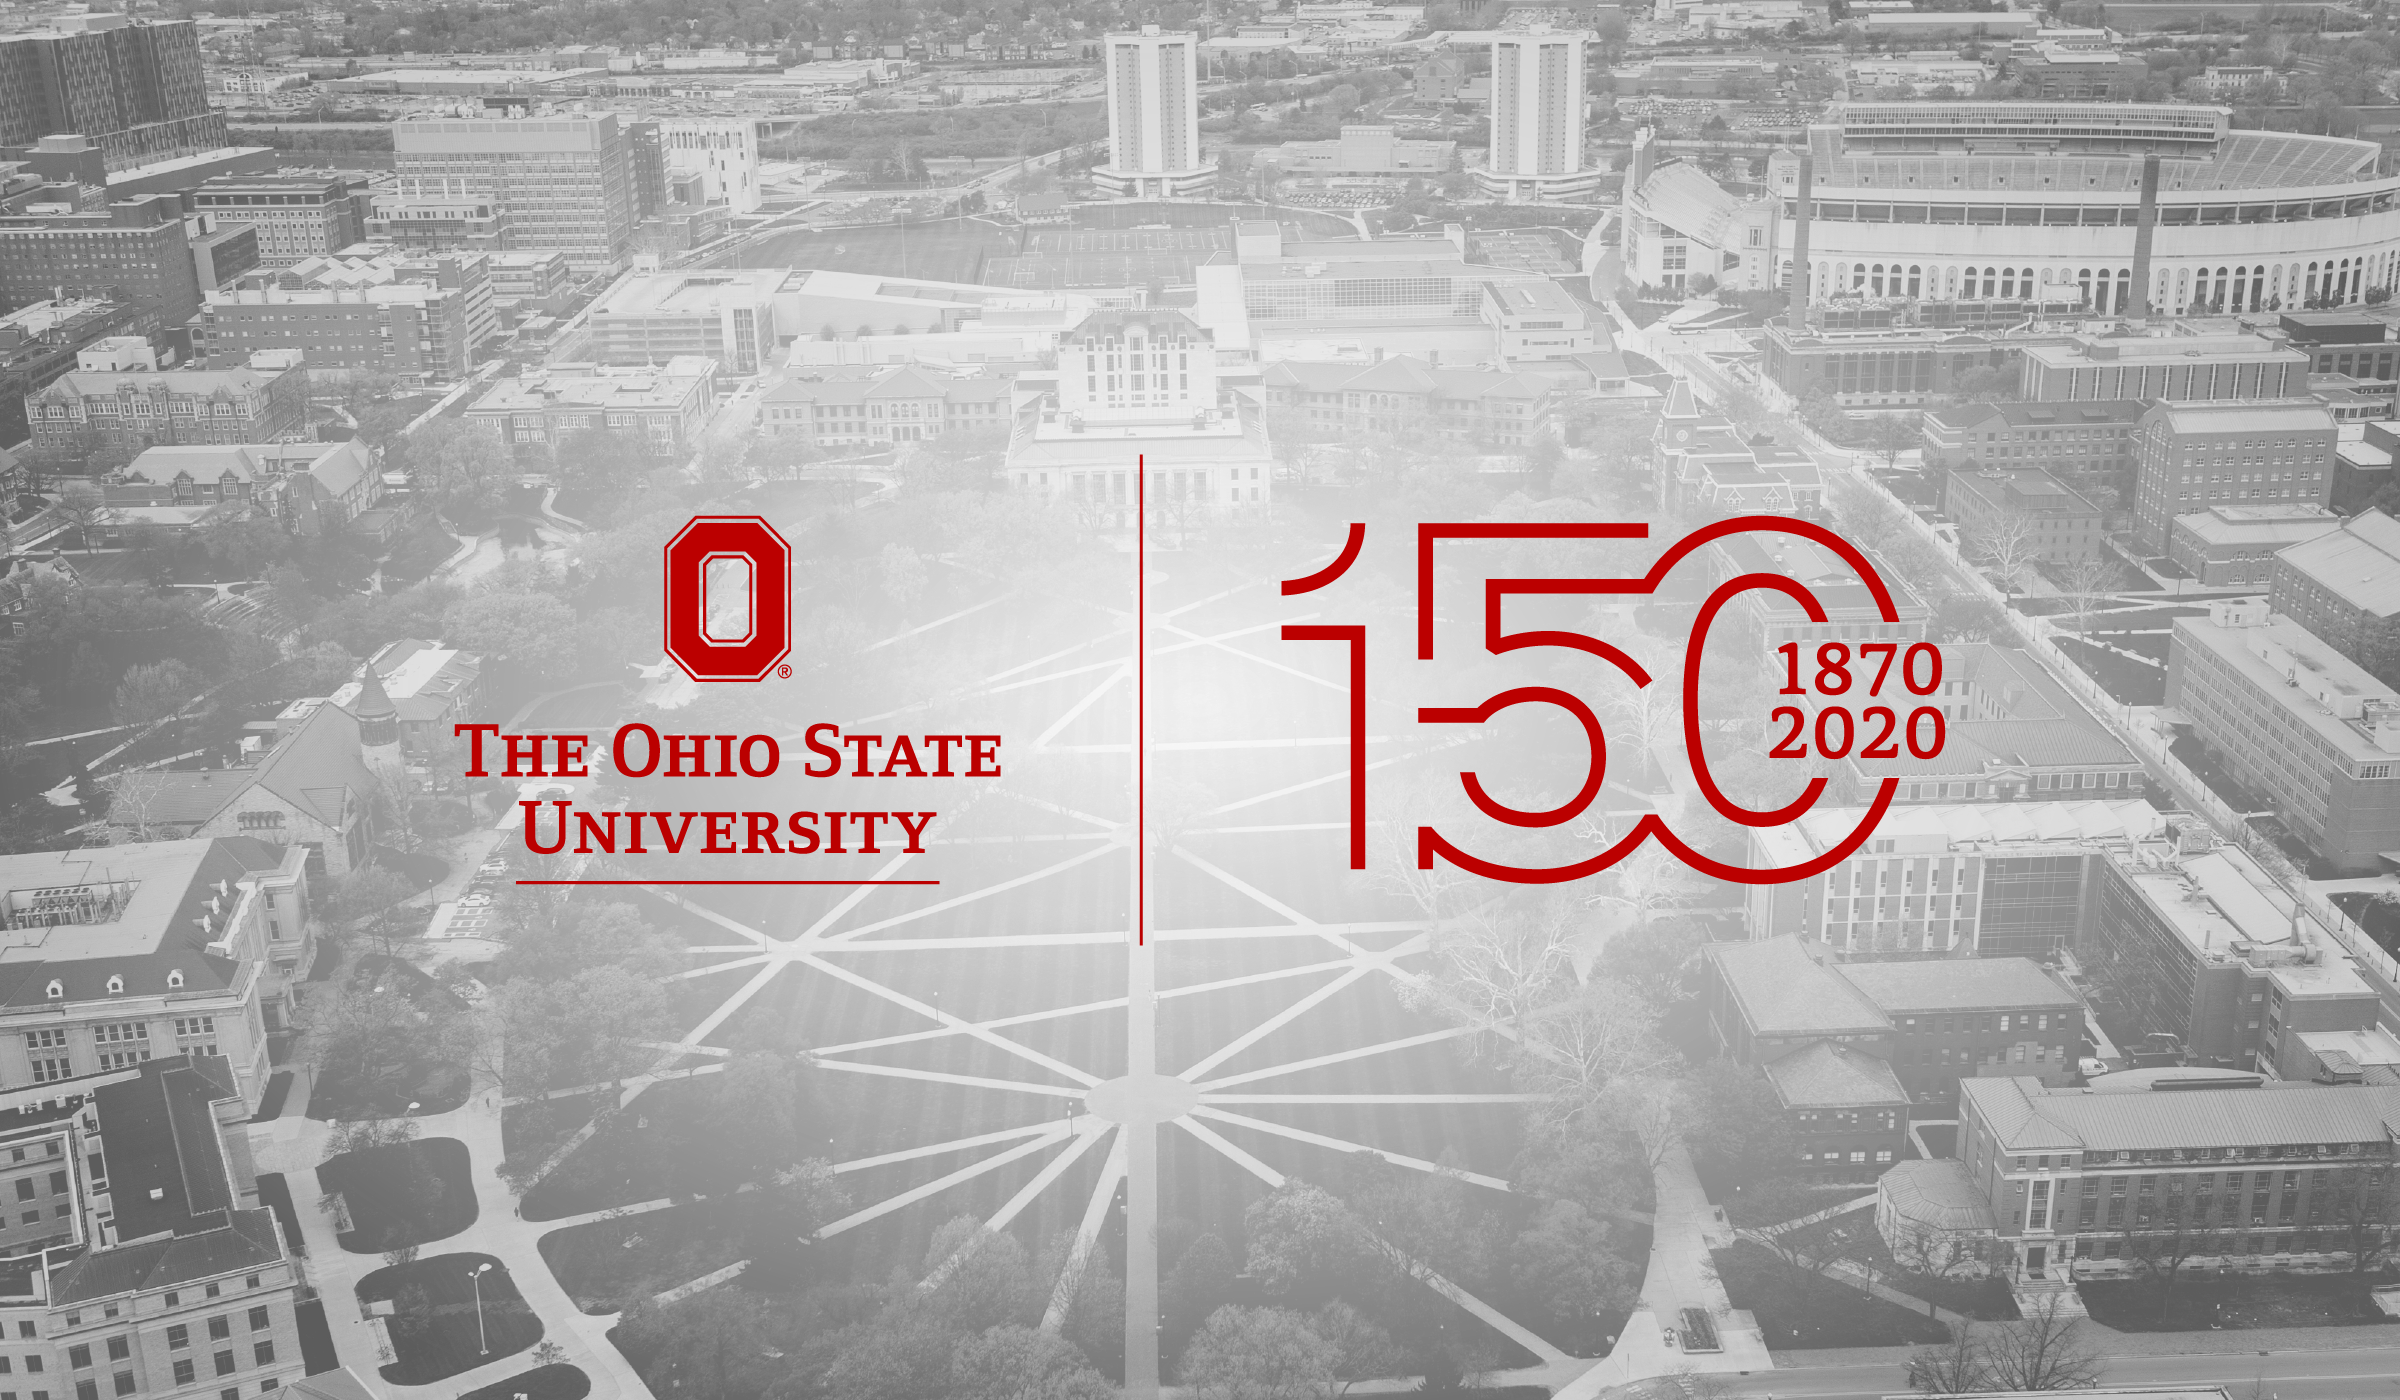 Ohio State University Graduation 2020.Celebration Homepage The Ohio State University